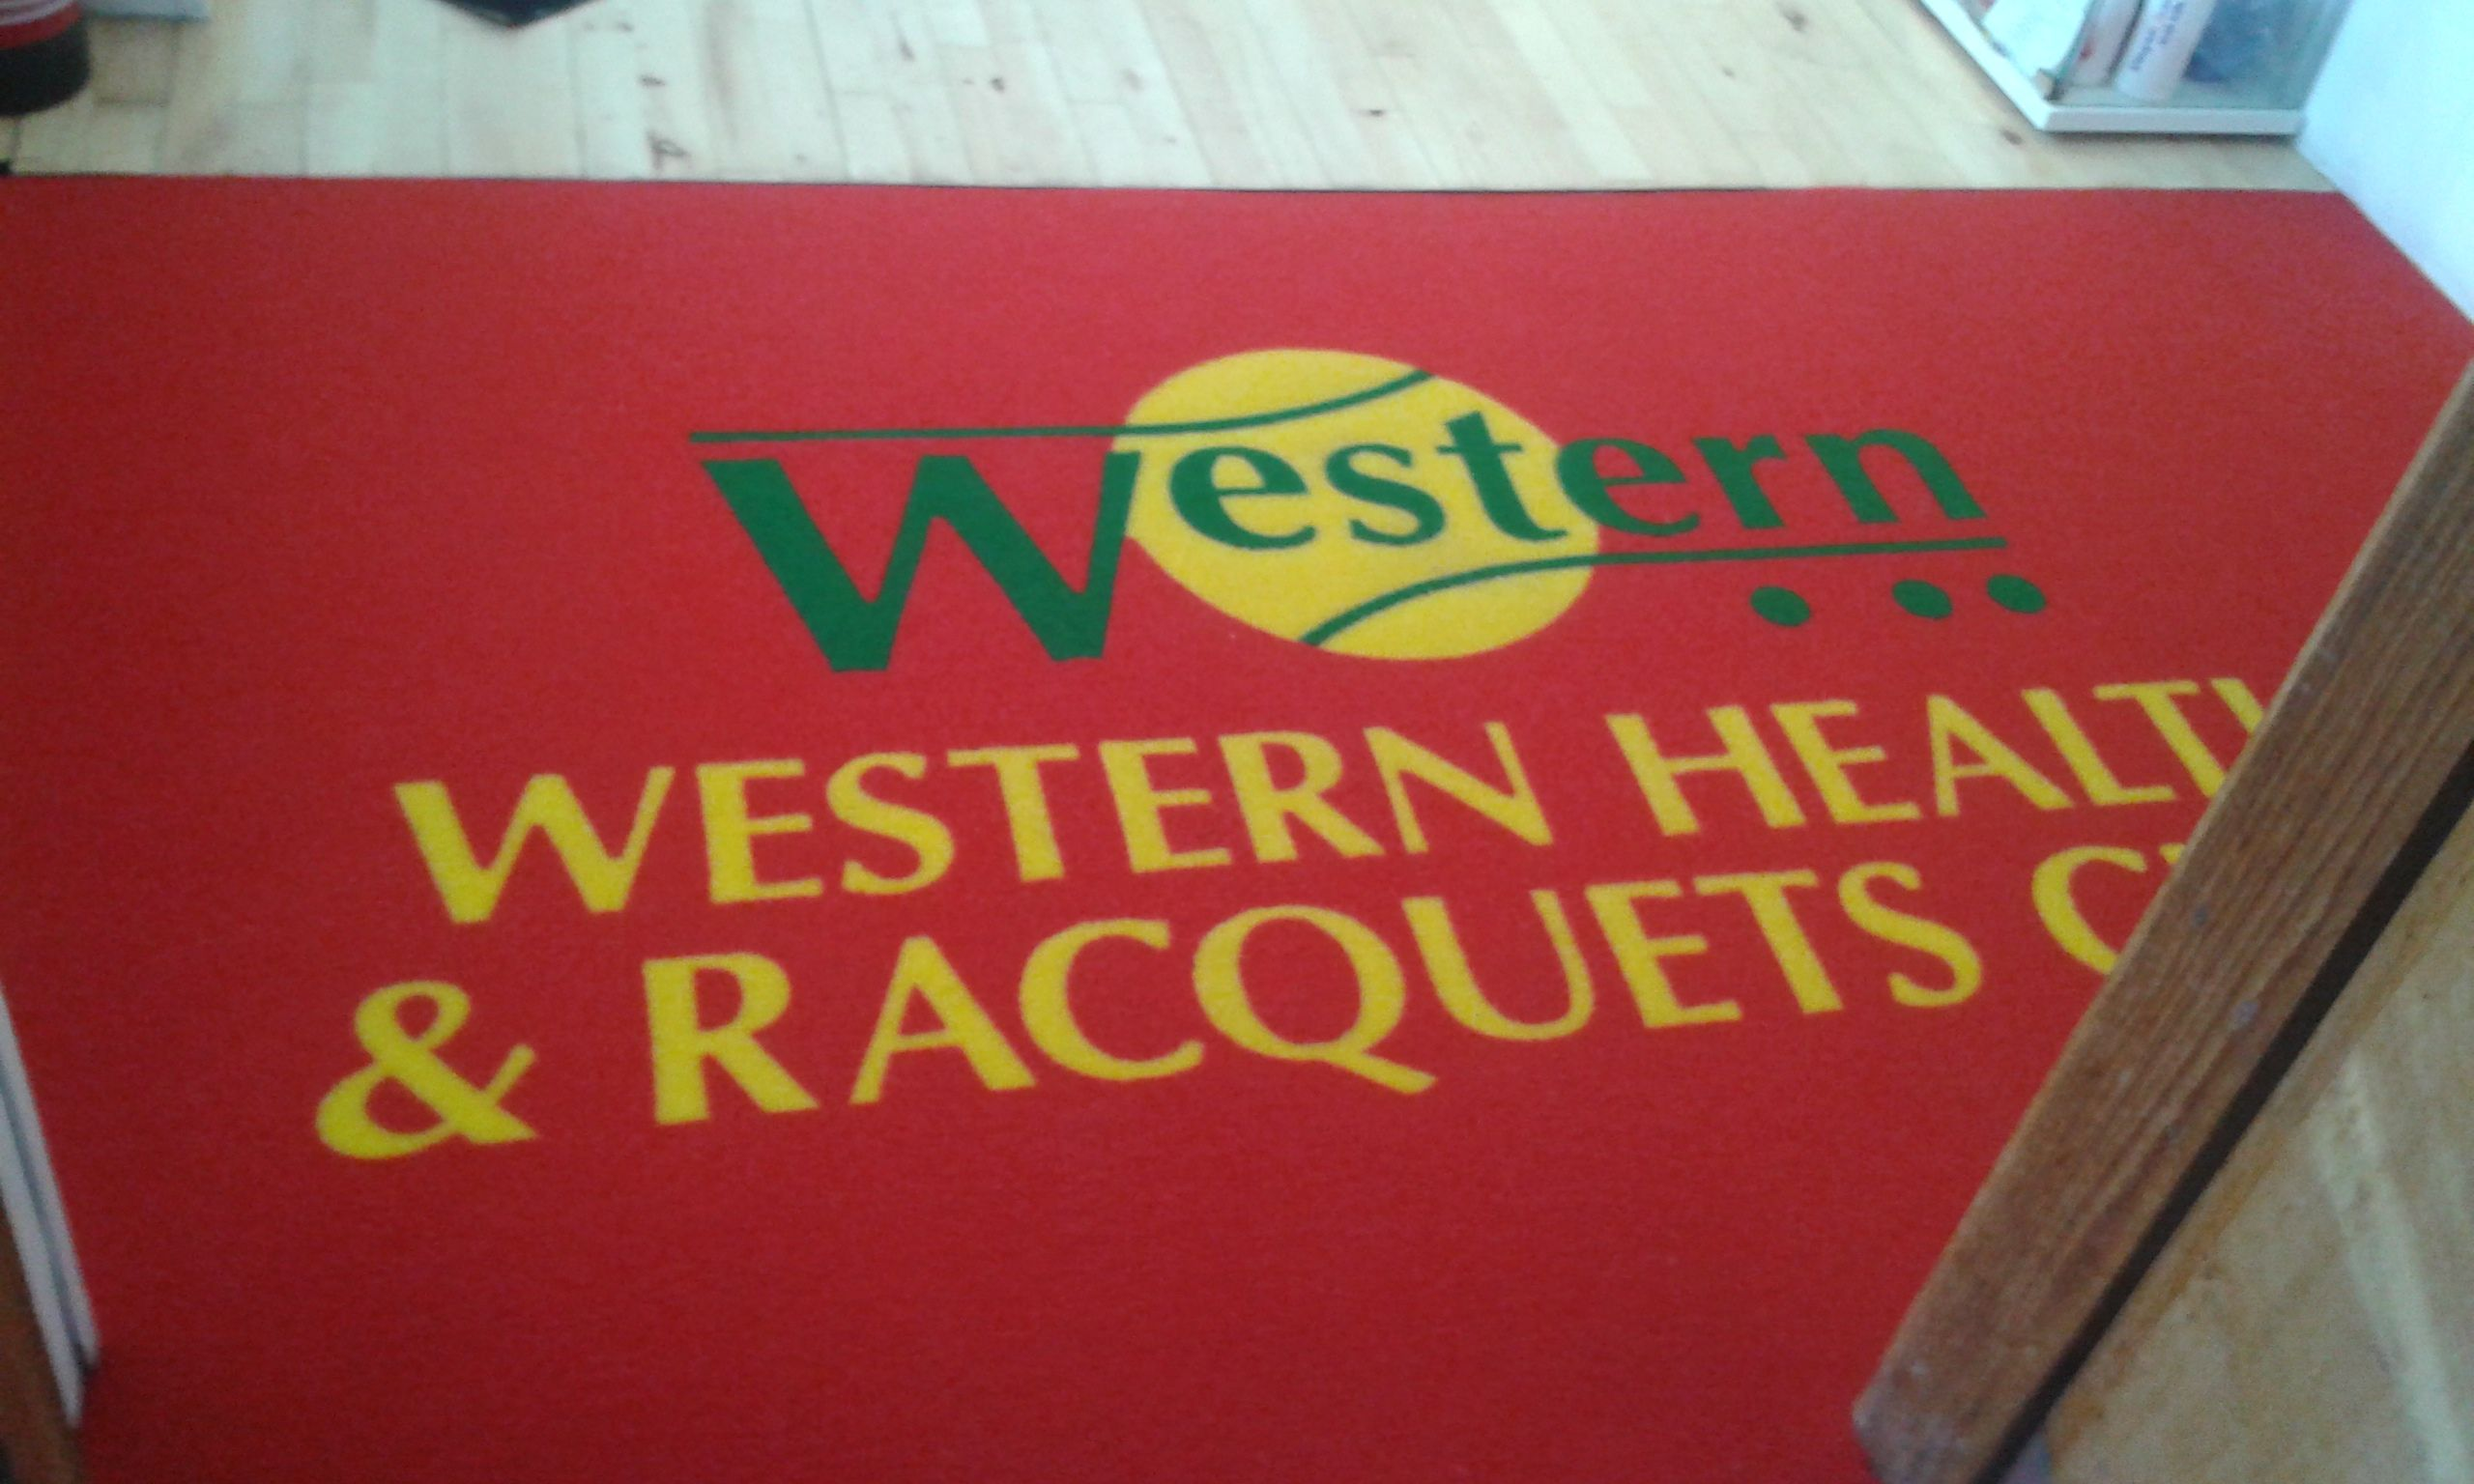 Western Health & Racquets Club